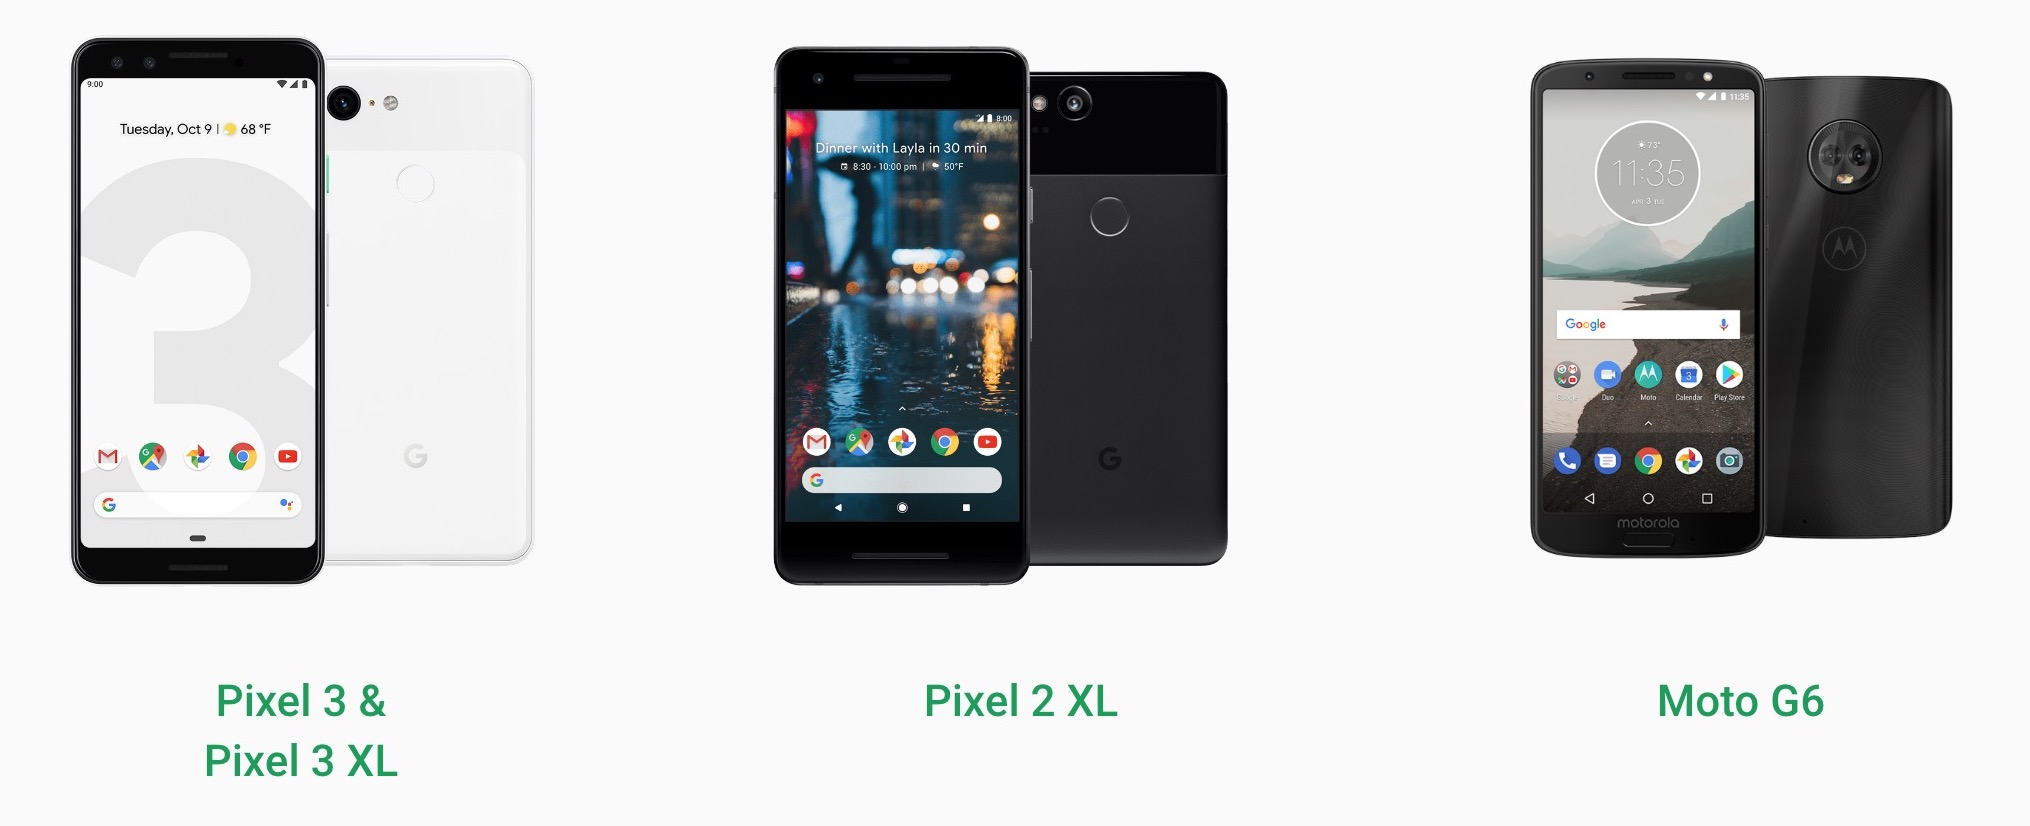 Google Fi drops 'Project' and now supports Android, iPhones - 9to5Google